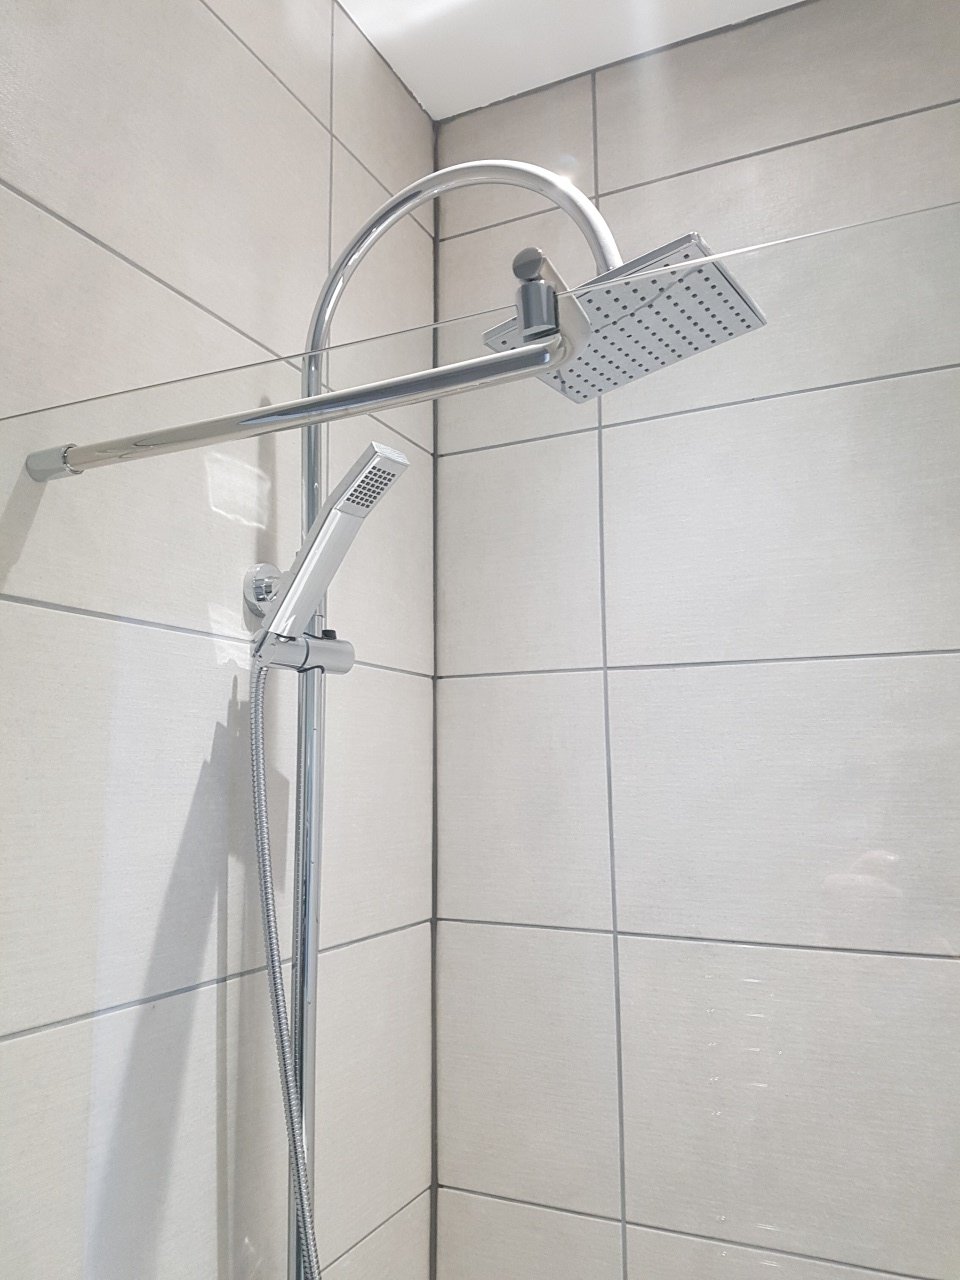 Porthcawl HMO - shower